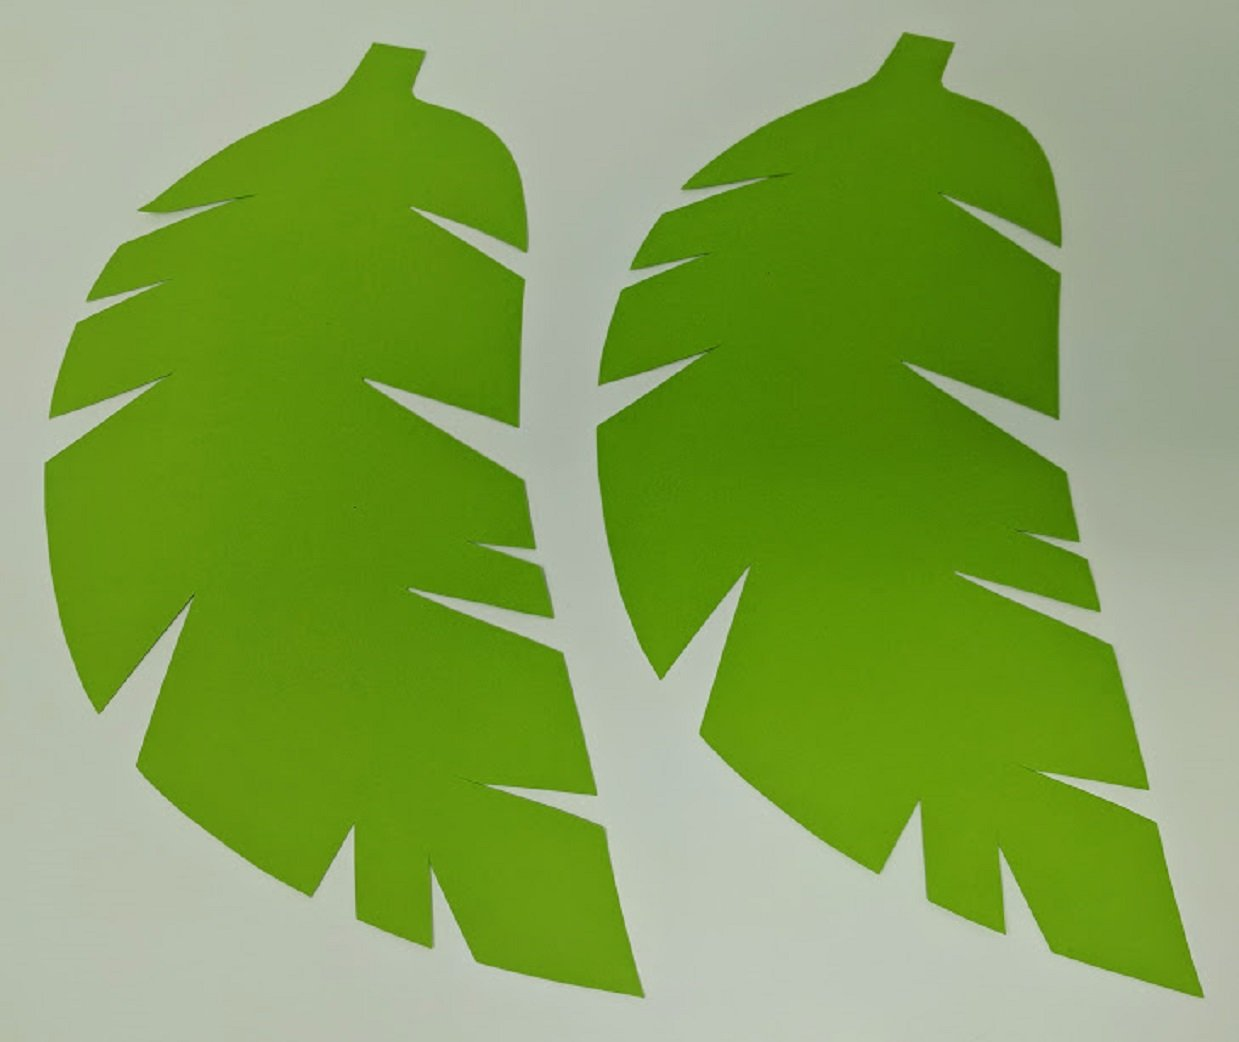 Different Shapes Green Tones 19 Tropical Paper Leaves Perfect for Backdrops